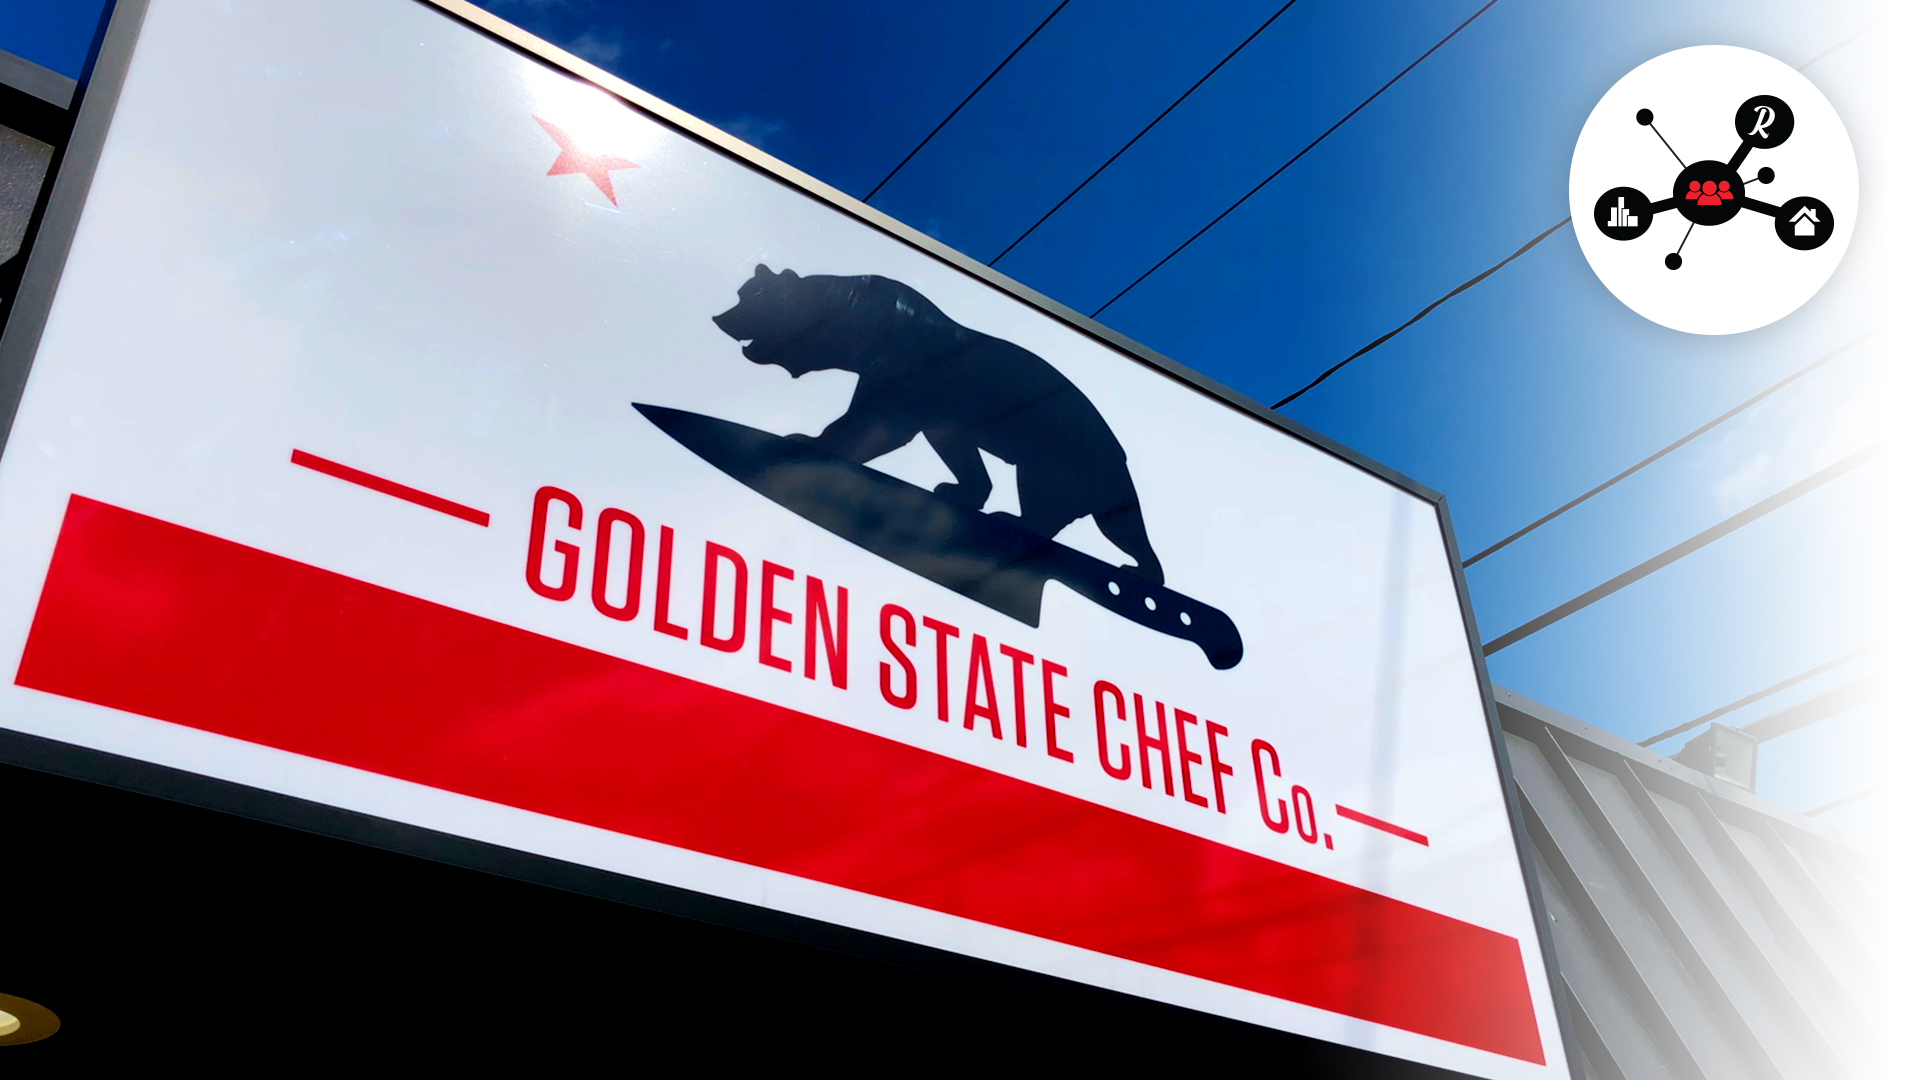 Golden State Chef Company